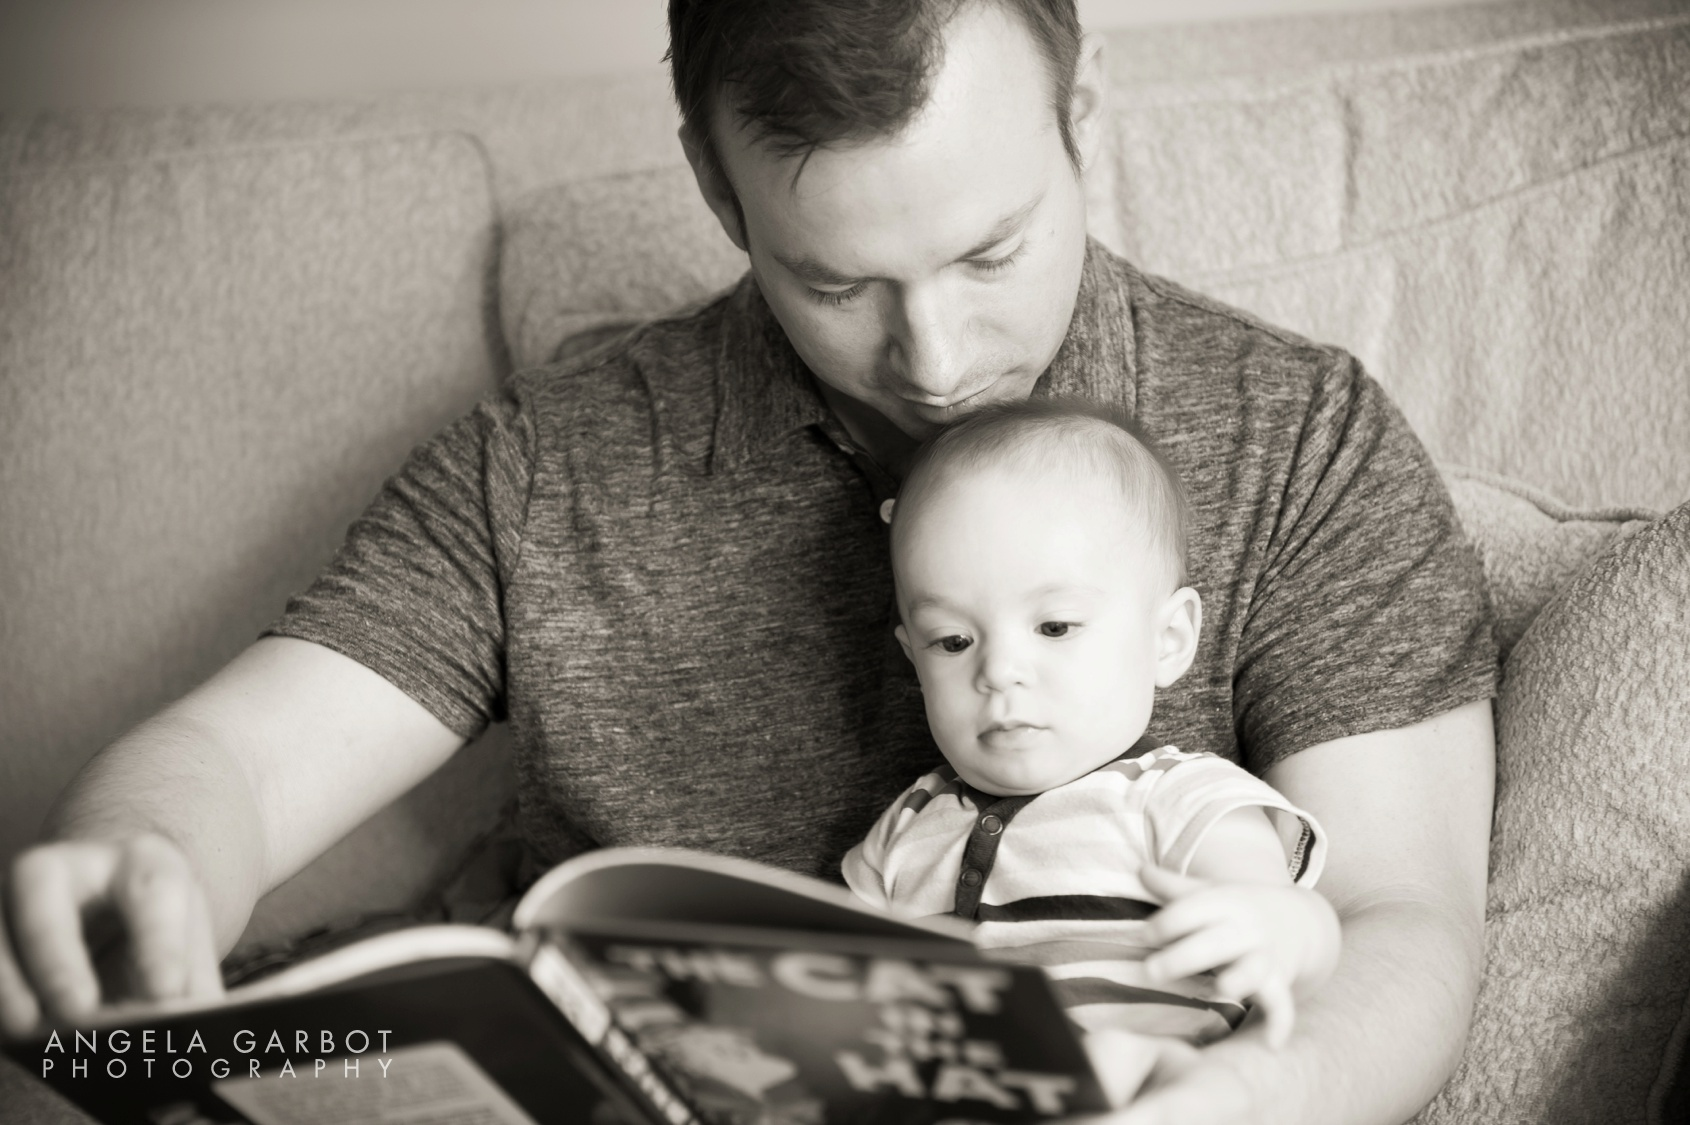 Father's Day 2016 #charlottefathersday #chicagofathersday #fathersday #lifestylefamilyphotography #charlottefamily #chicagofamily ©2016 Angela Garbot http://www.AngelaGarbot.com